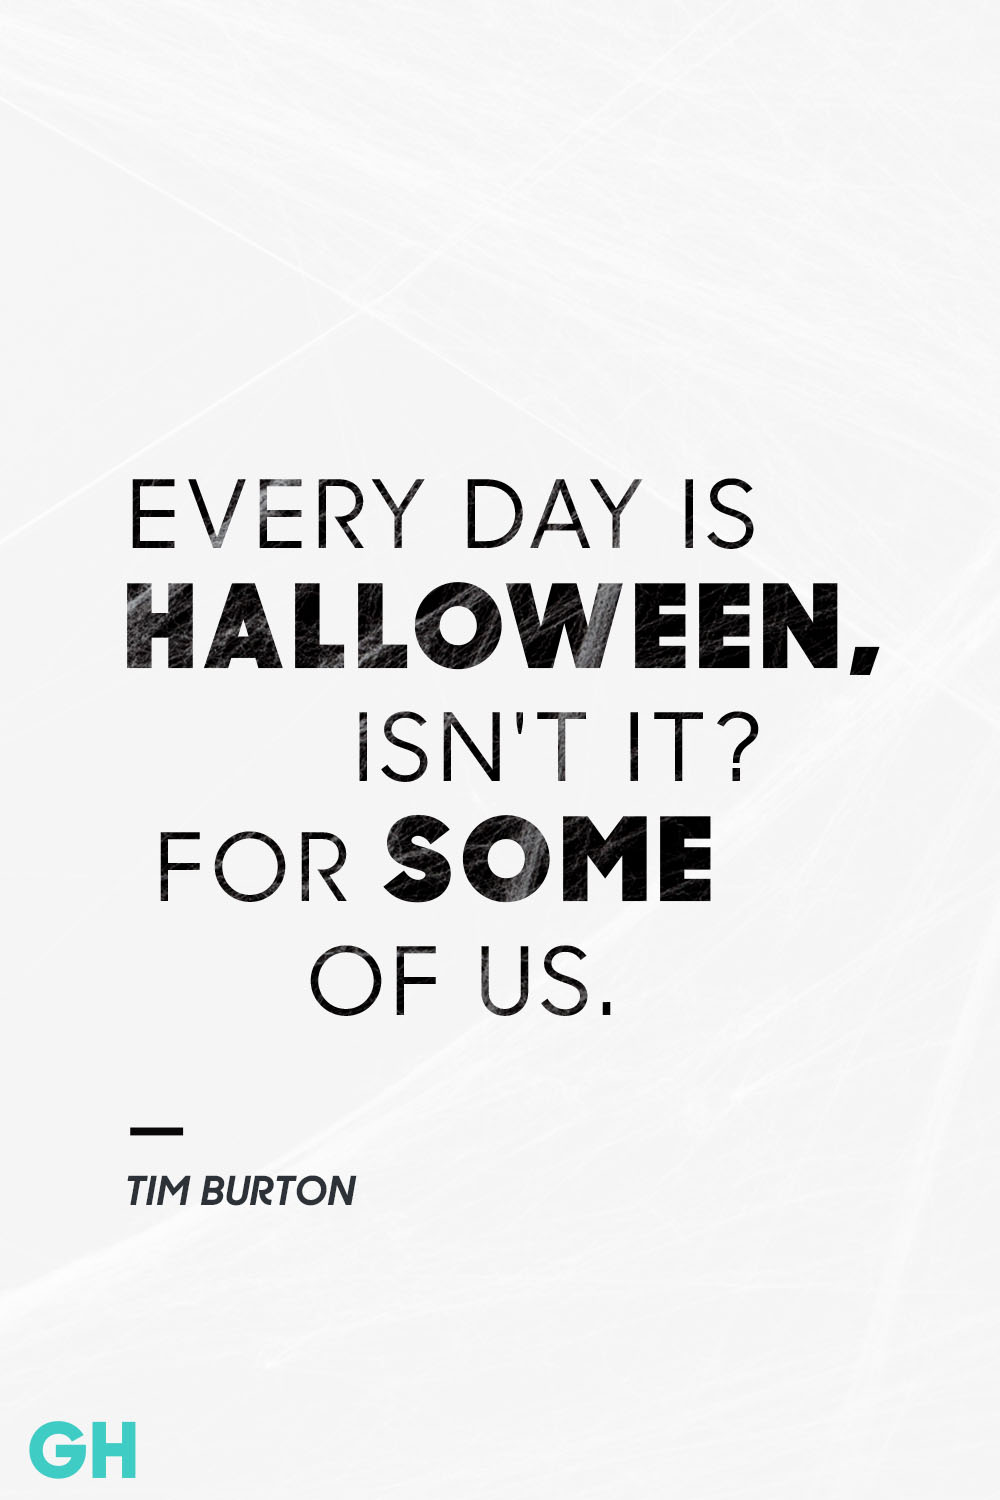 Rhyming Life Quotes 20 Spooky Halloween Quotes  Best Halloween Sayings